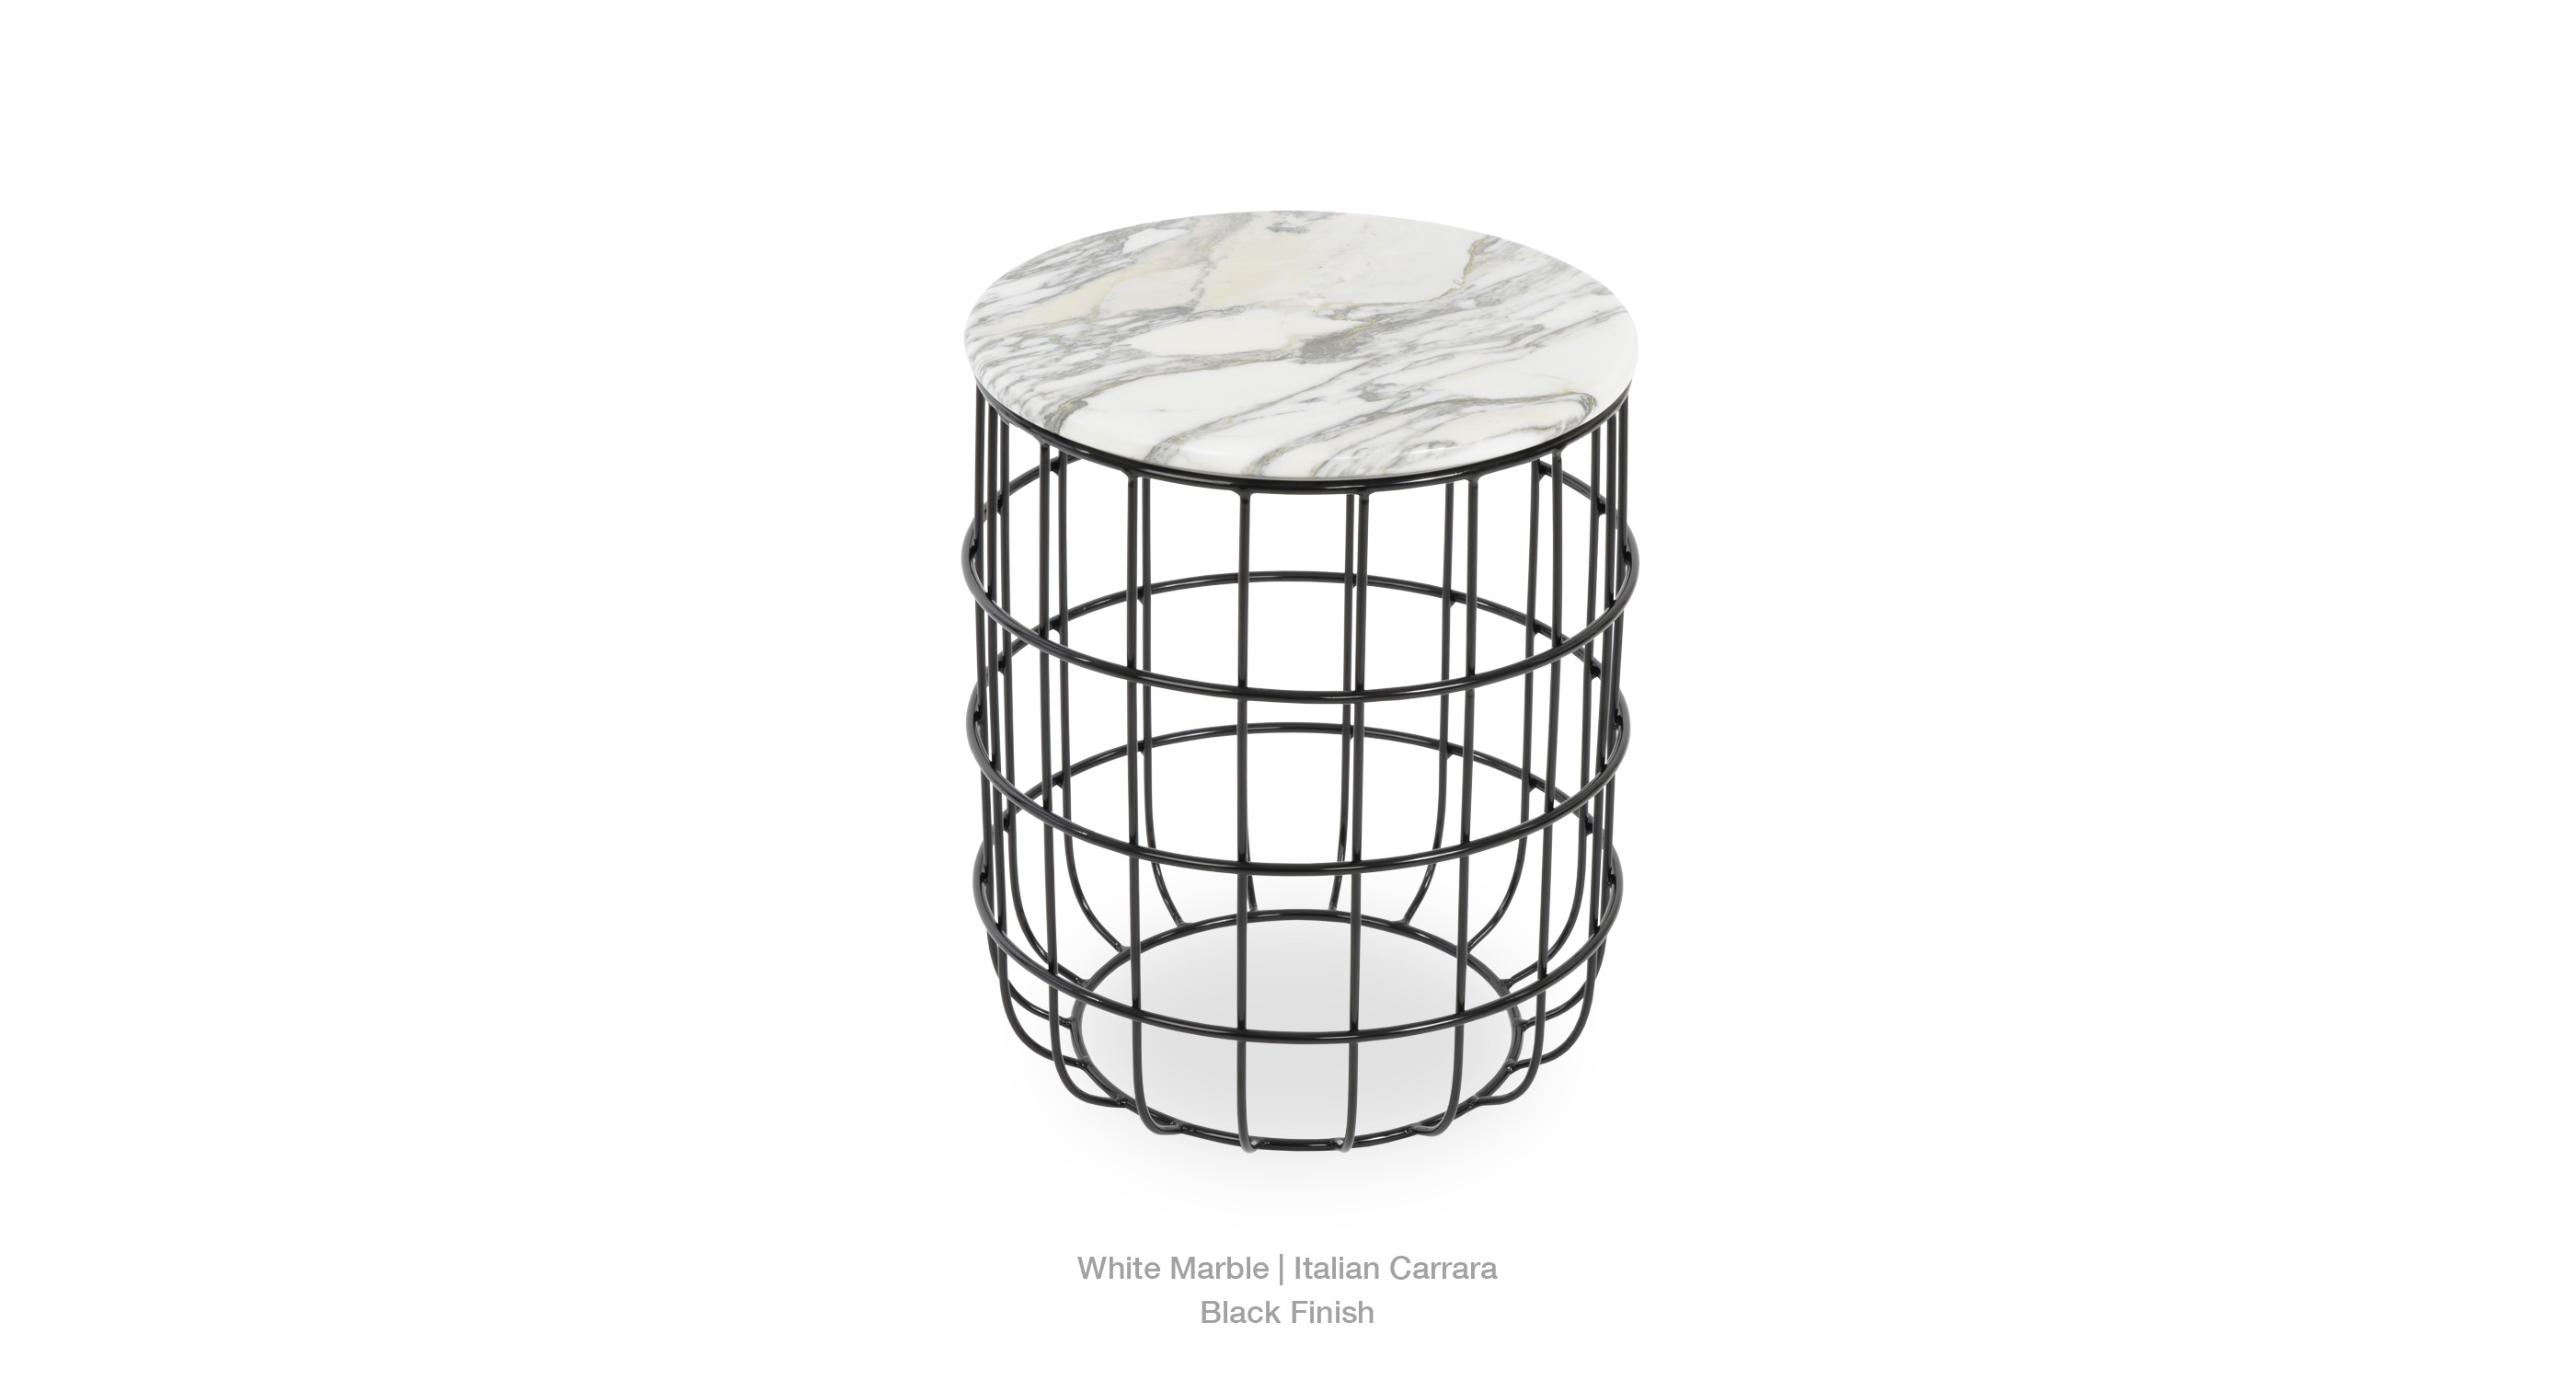 2020 03 24 Violetta End Table White Marble Black